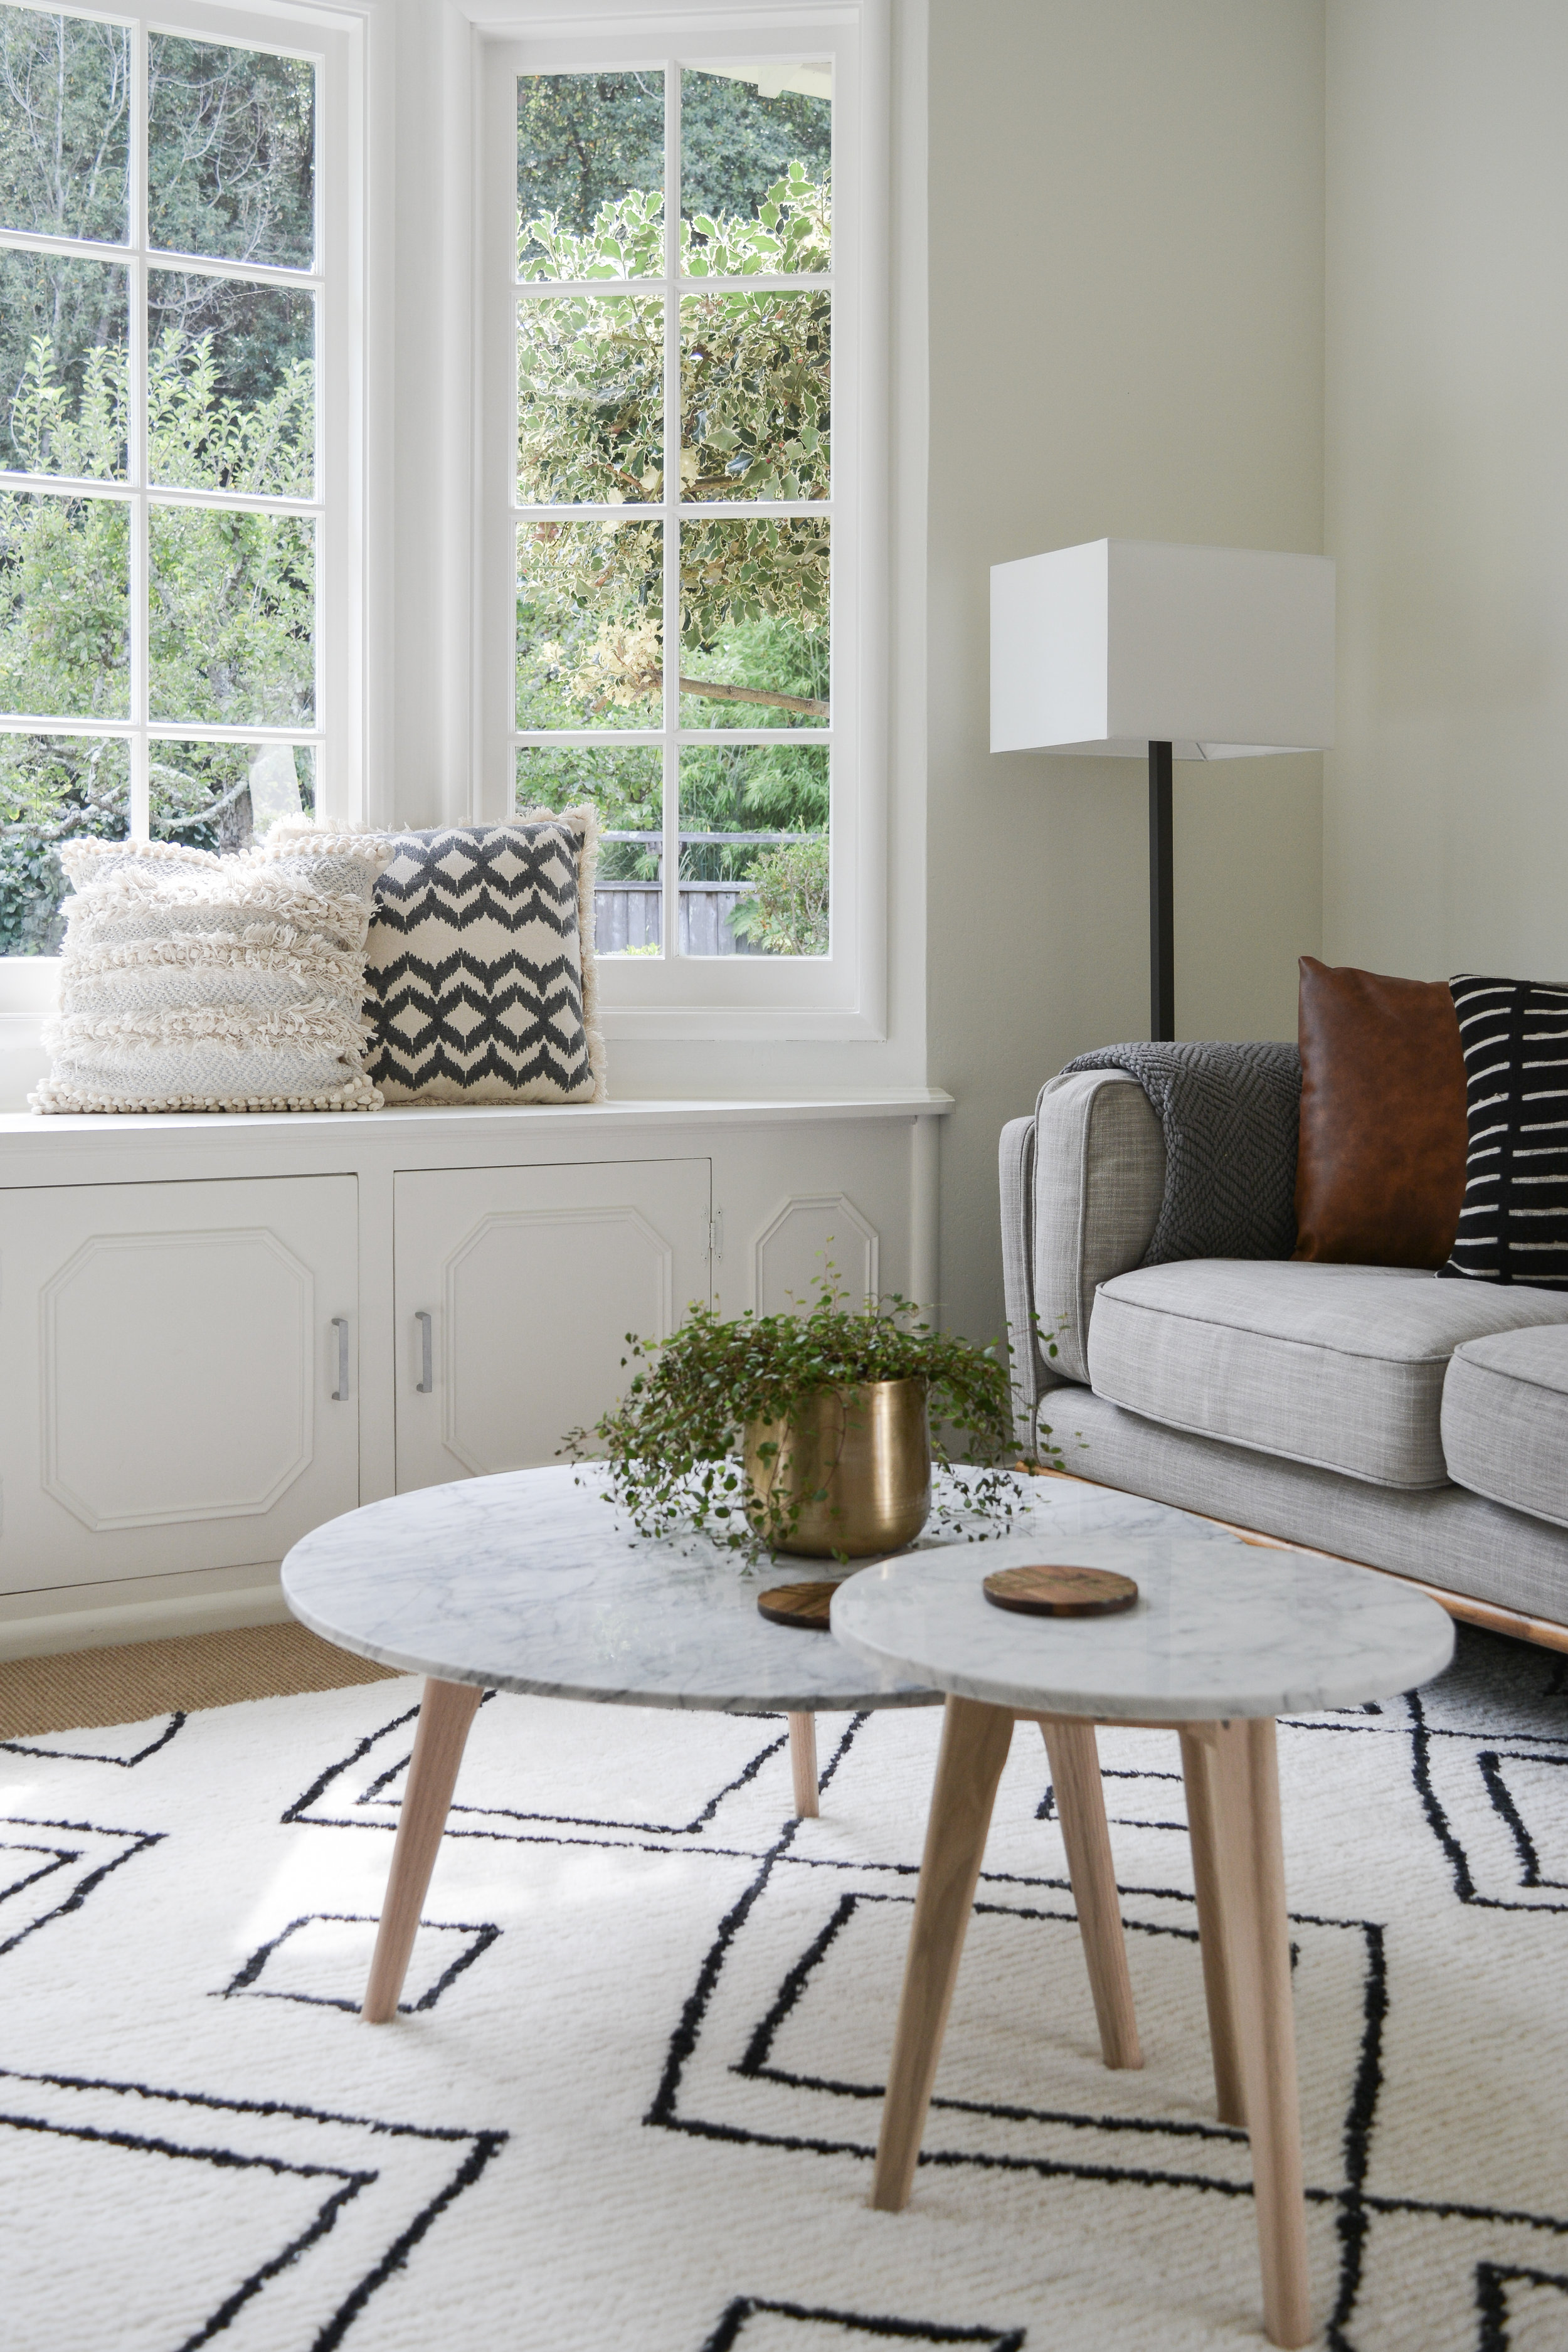 Angela Grace Design // Rollingwood Living Room // San Francisco and SF Bay Area Interior Designer, Decorator